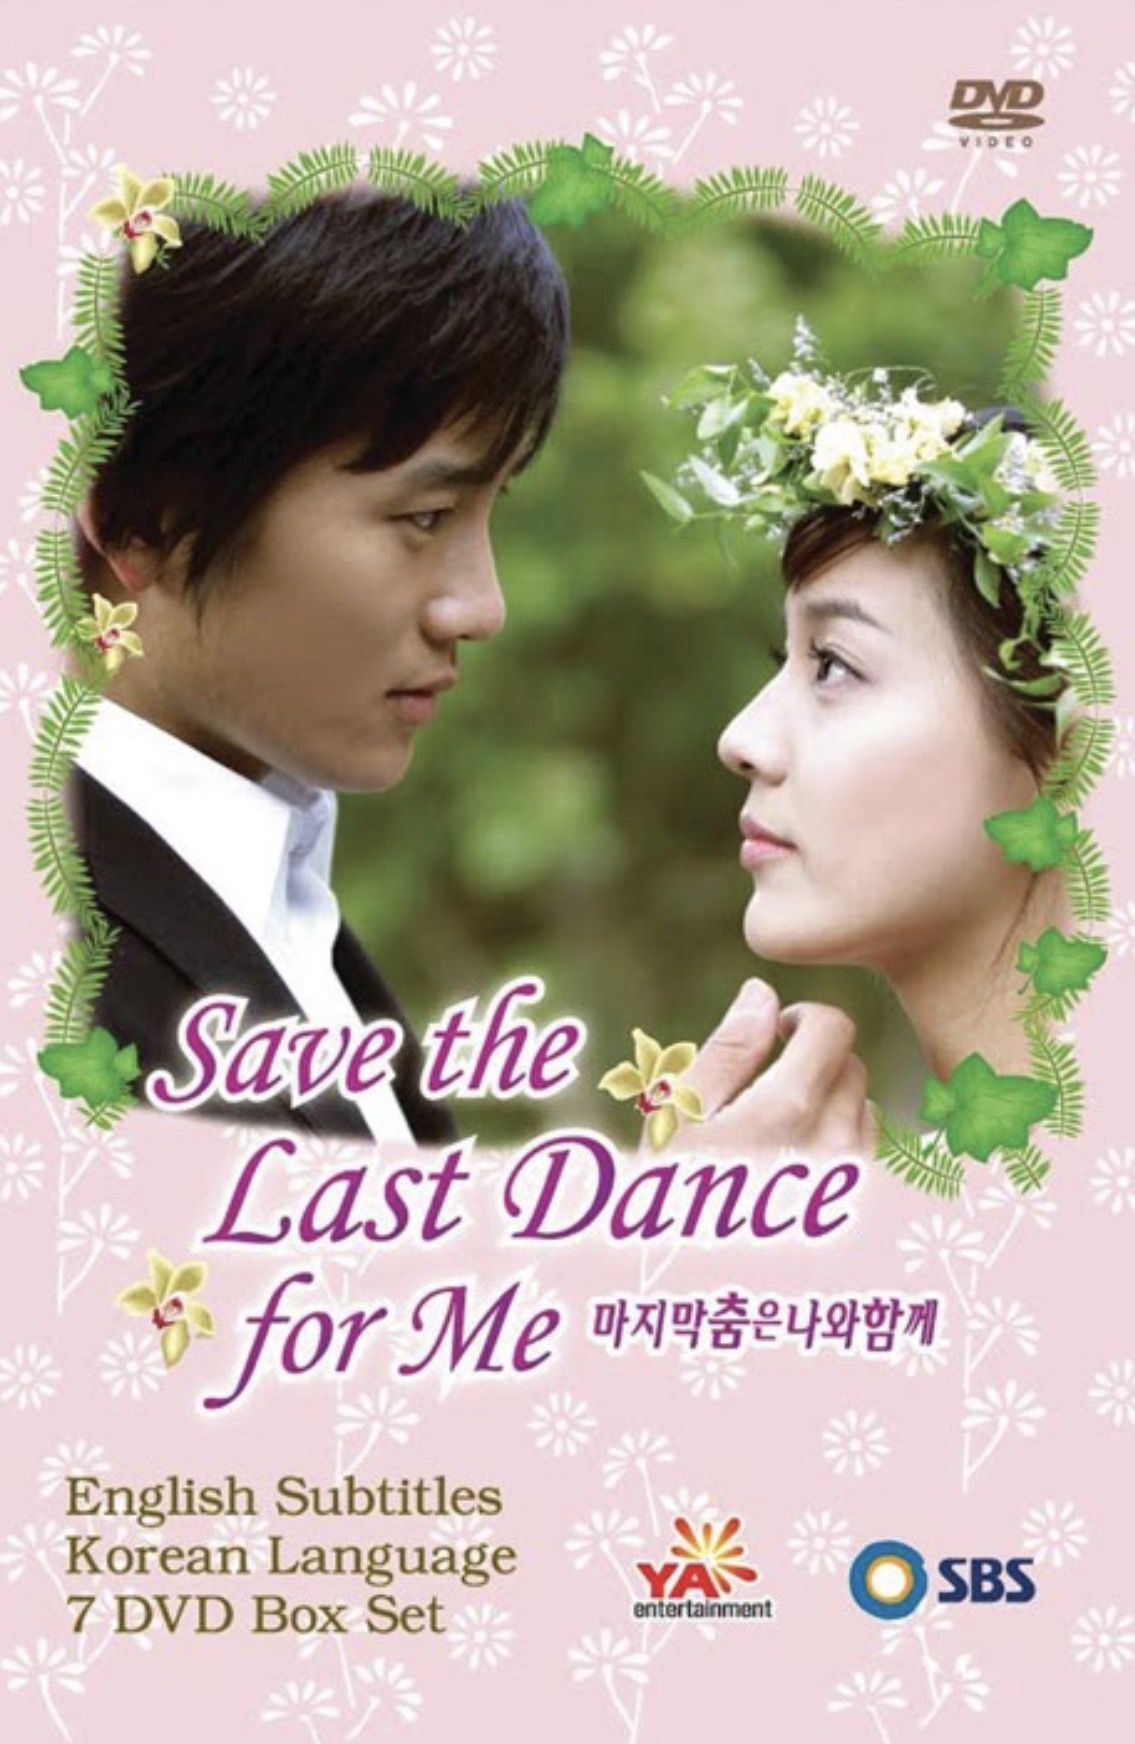 Save The Last Dance For Me 2005 Ep20 Korean Romance Cast Ji Sung Eugene Lee Bo Young Ryu Soo Young Lee Hye Young Kim Save The Last Dance Last Dance Dance